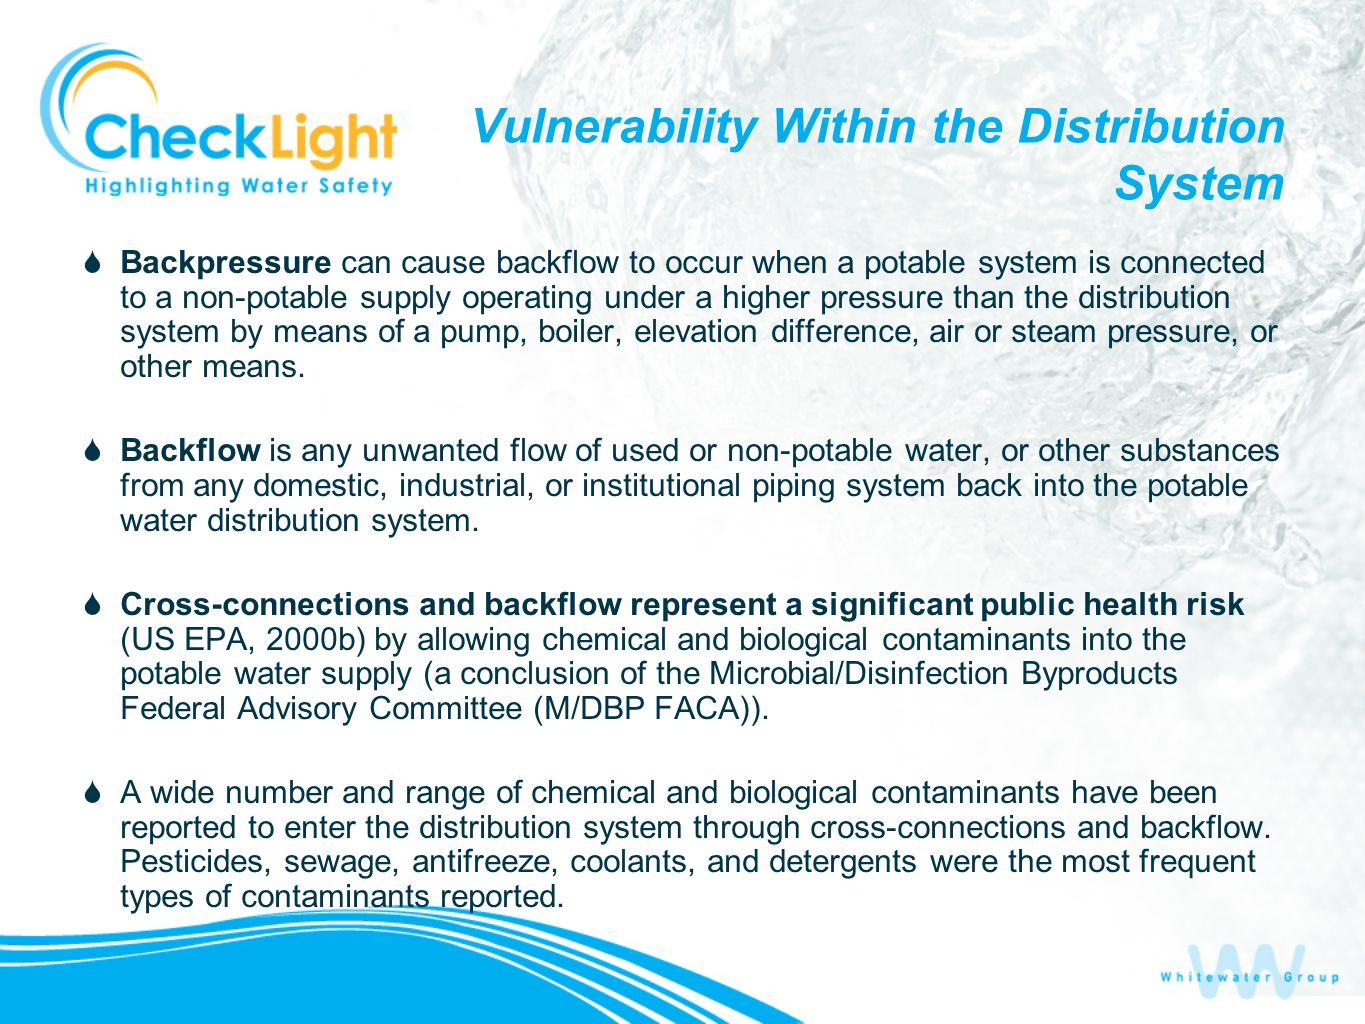 Vulnerability Within the Distribution System Backpressure can cause backflow to occur when a potable system is connected to a non-potable supply operating under a higher pressure than the distribution system by means of a pump, boiler, elevation difference, air or steam pressure, or other means.